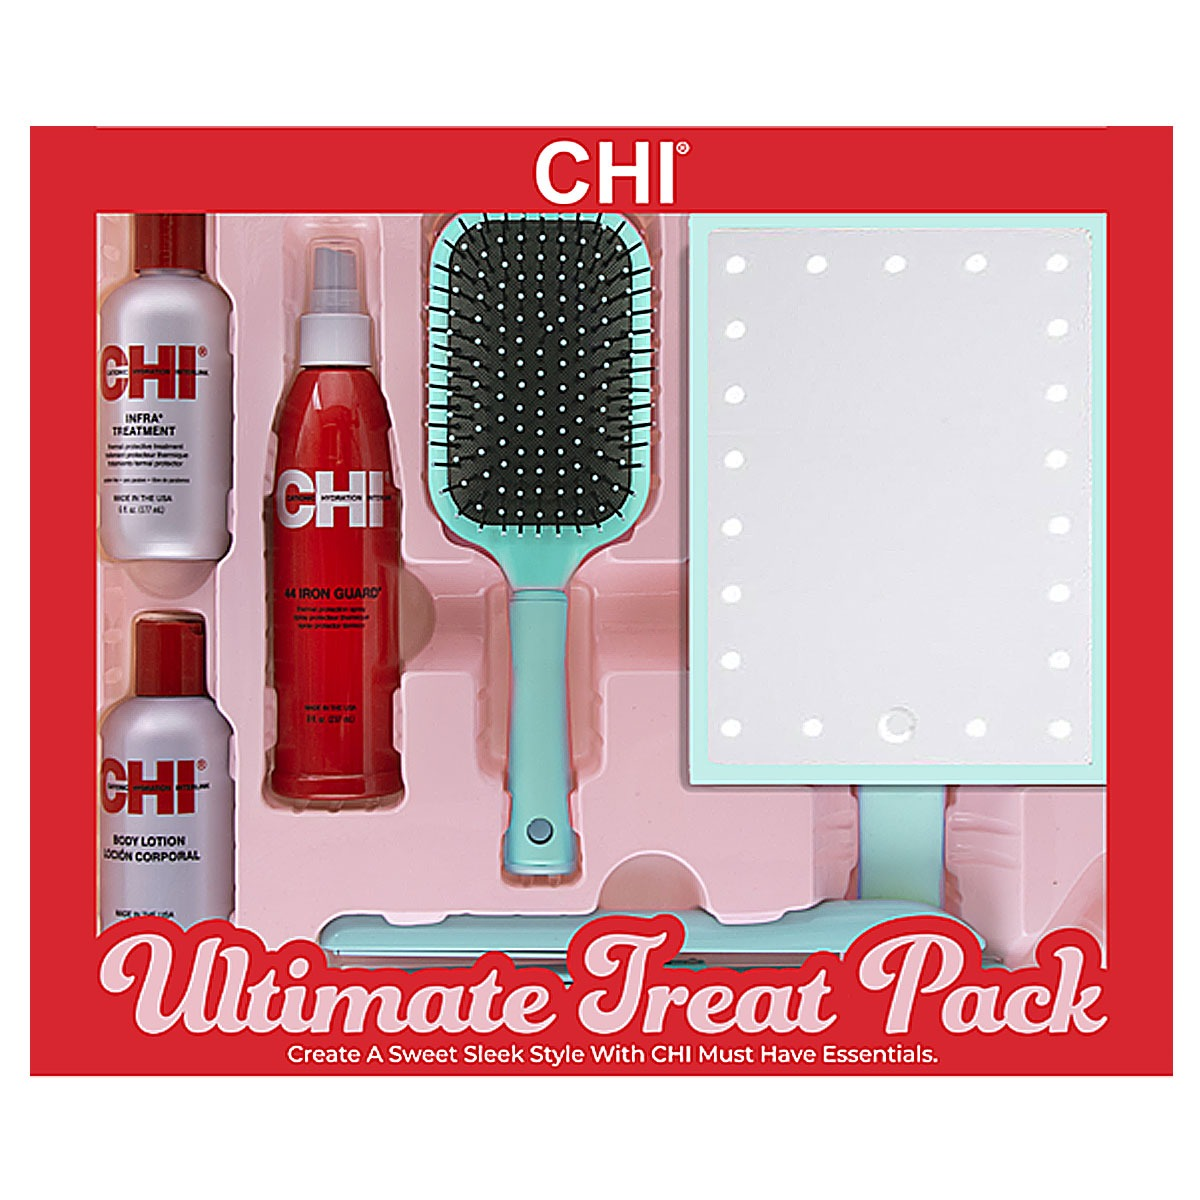 CHI-Ultimate-Treat-Pack ( it contains 1-inch Ceramic Flat Iron, CHI Large Paddle Brush, CHI Infra Shampoo, CHI Infra Conditioner, and CHI's 44 Iron Guard Thermal Protecting Spray